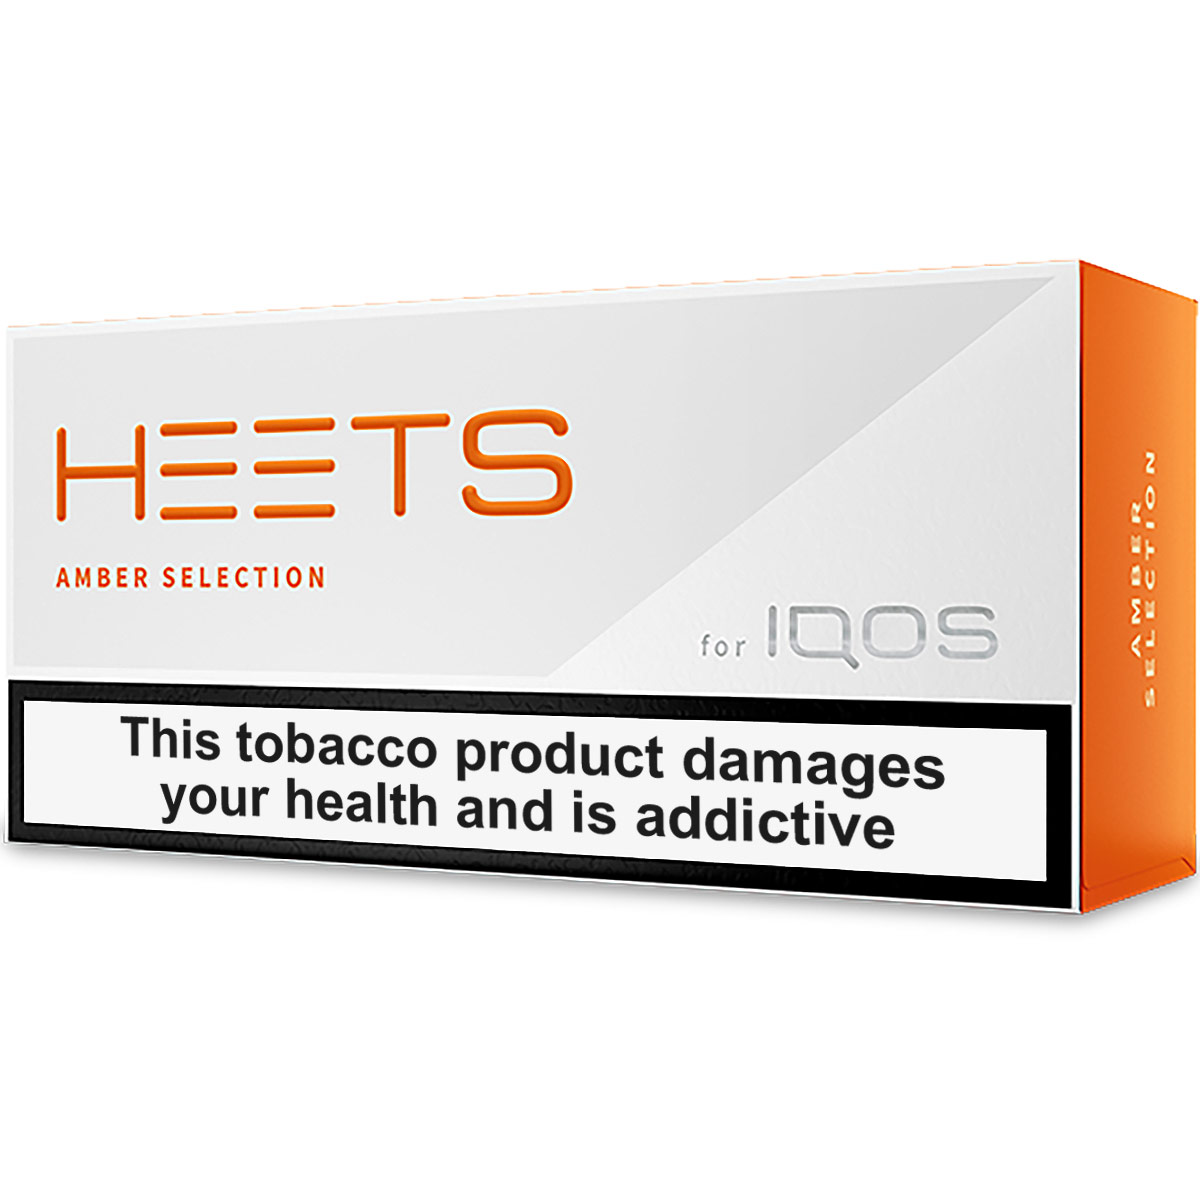 Heets - Amber Selection